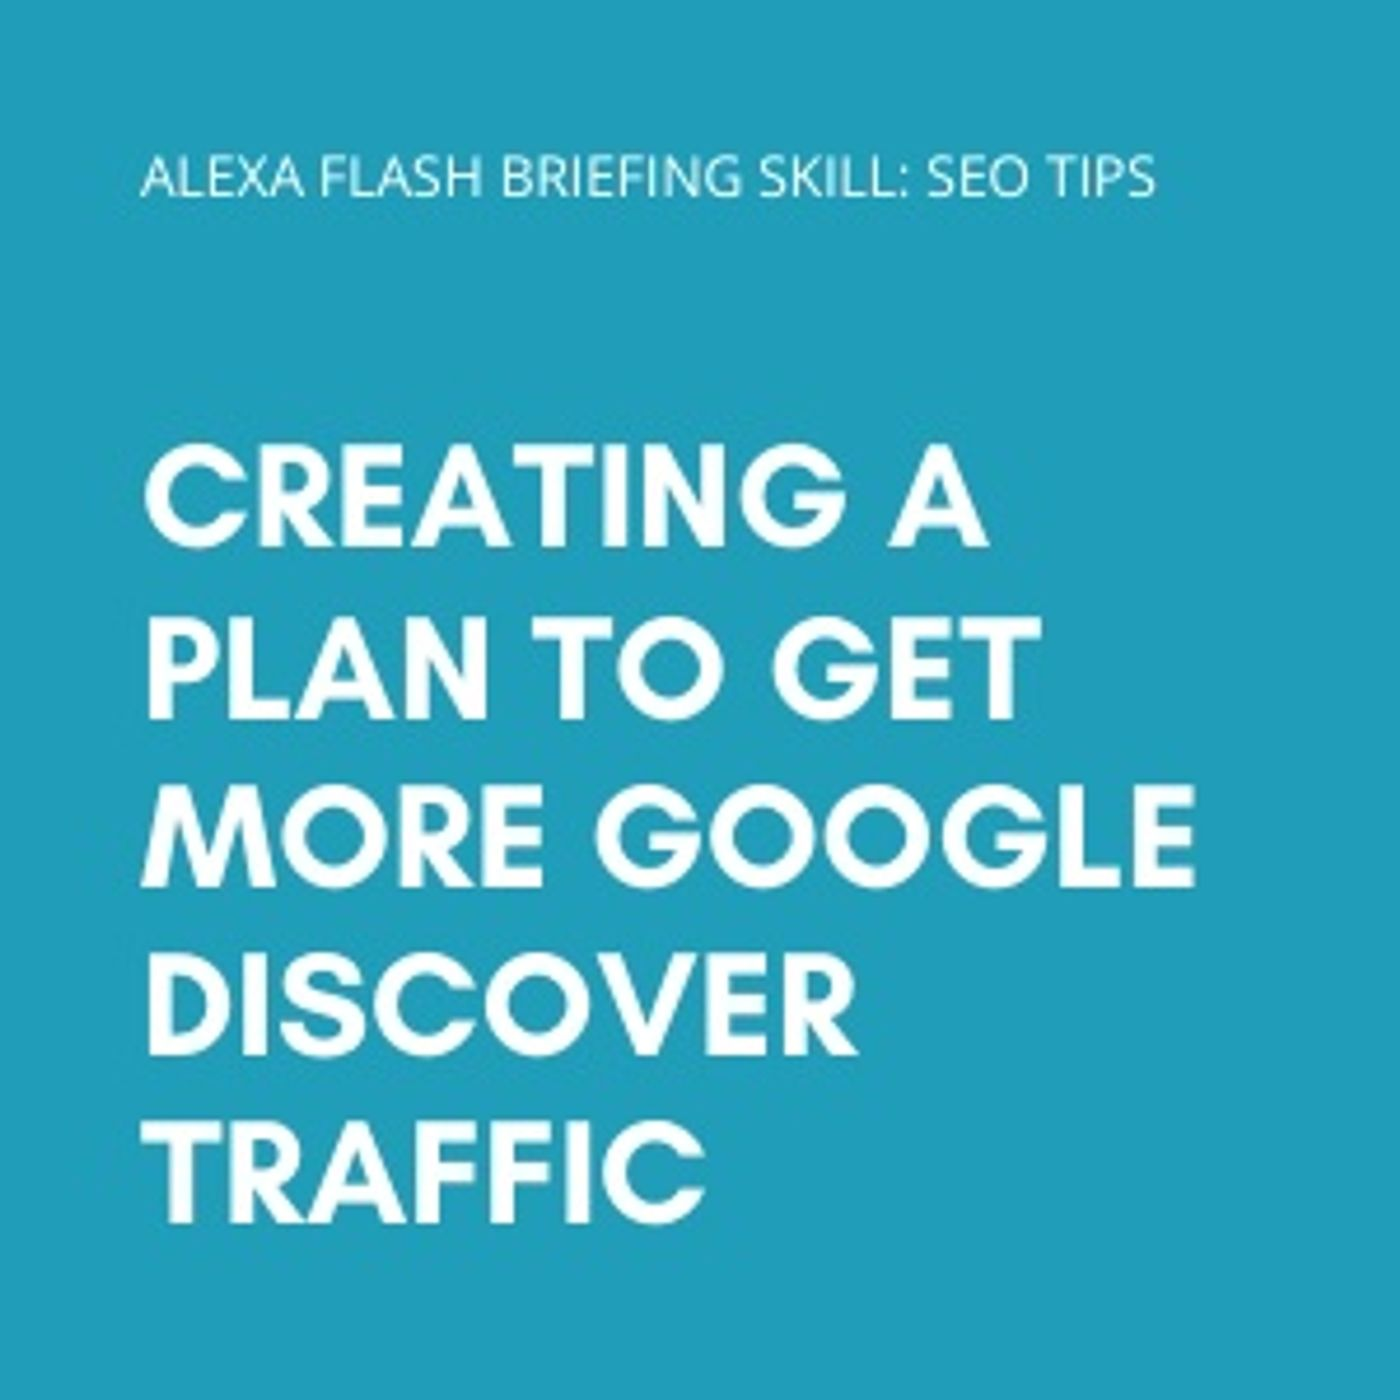 Creating a plan to get more Google Discover traffic